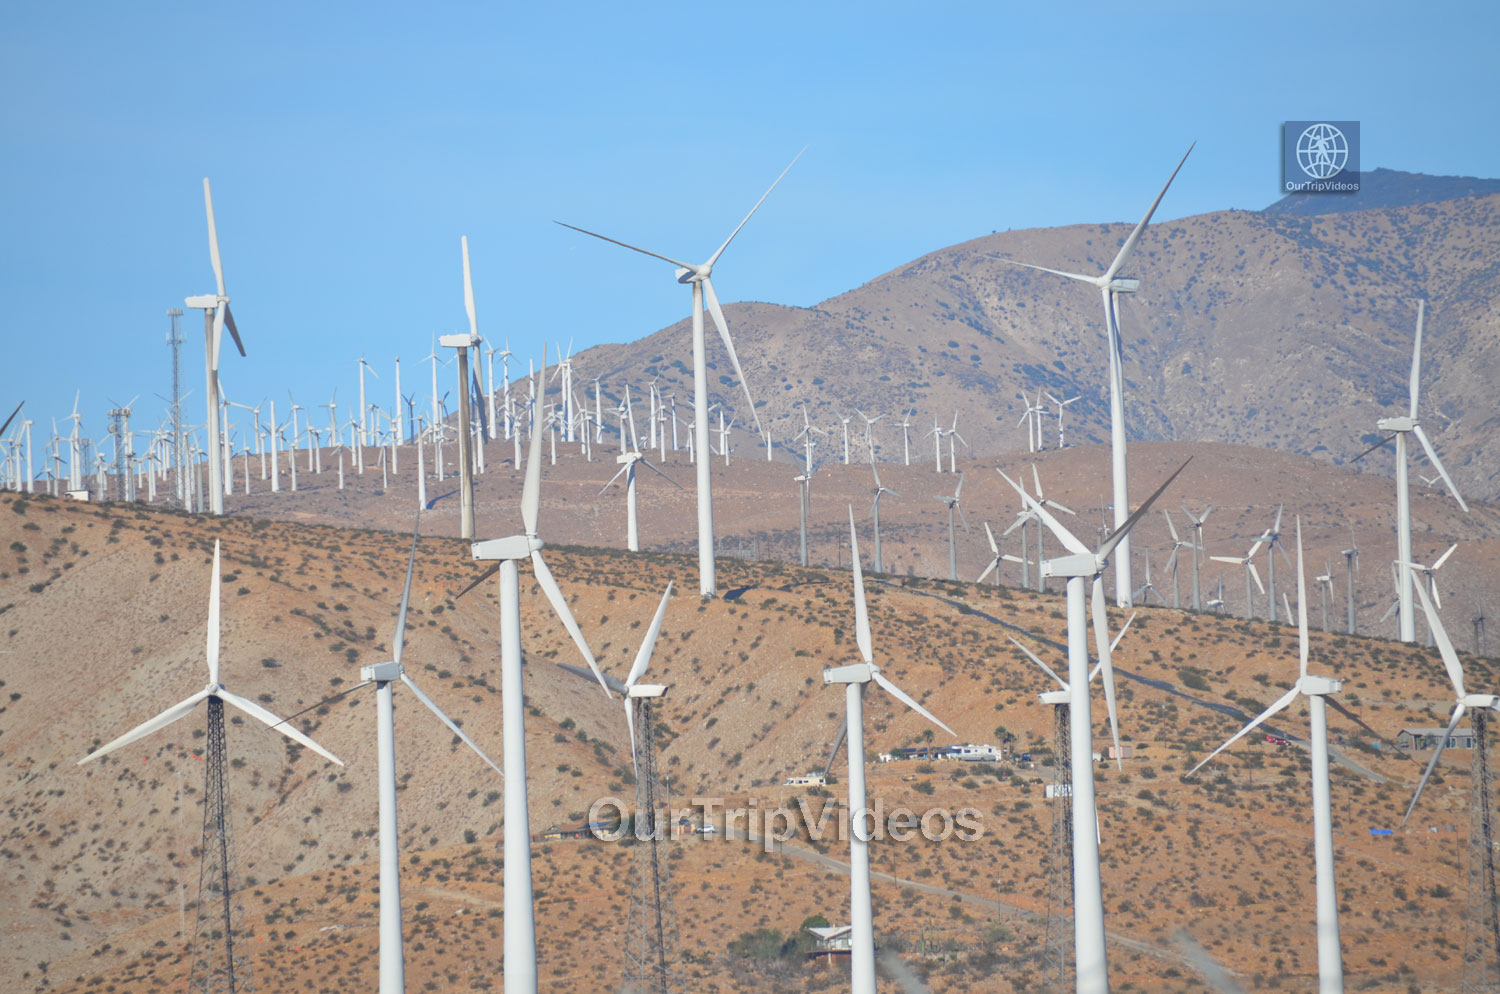 Windmill Tour, Palm Springs, CA, USA - Picture 9 of 25